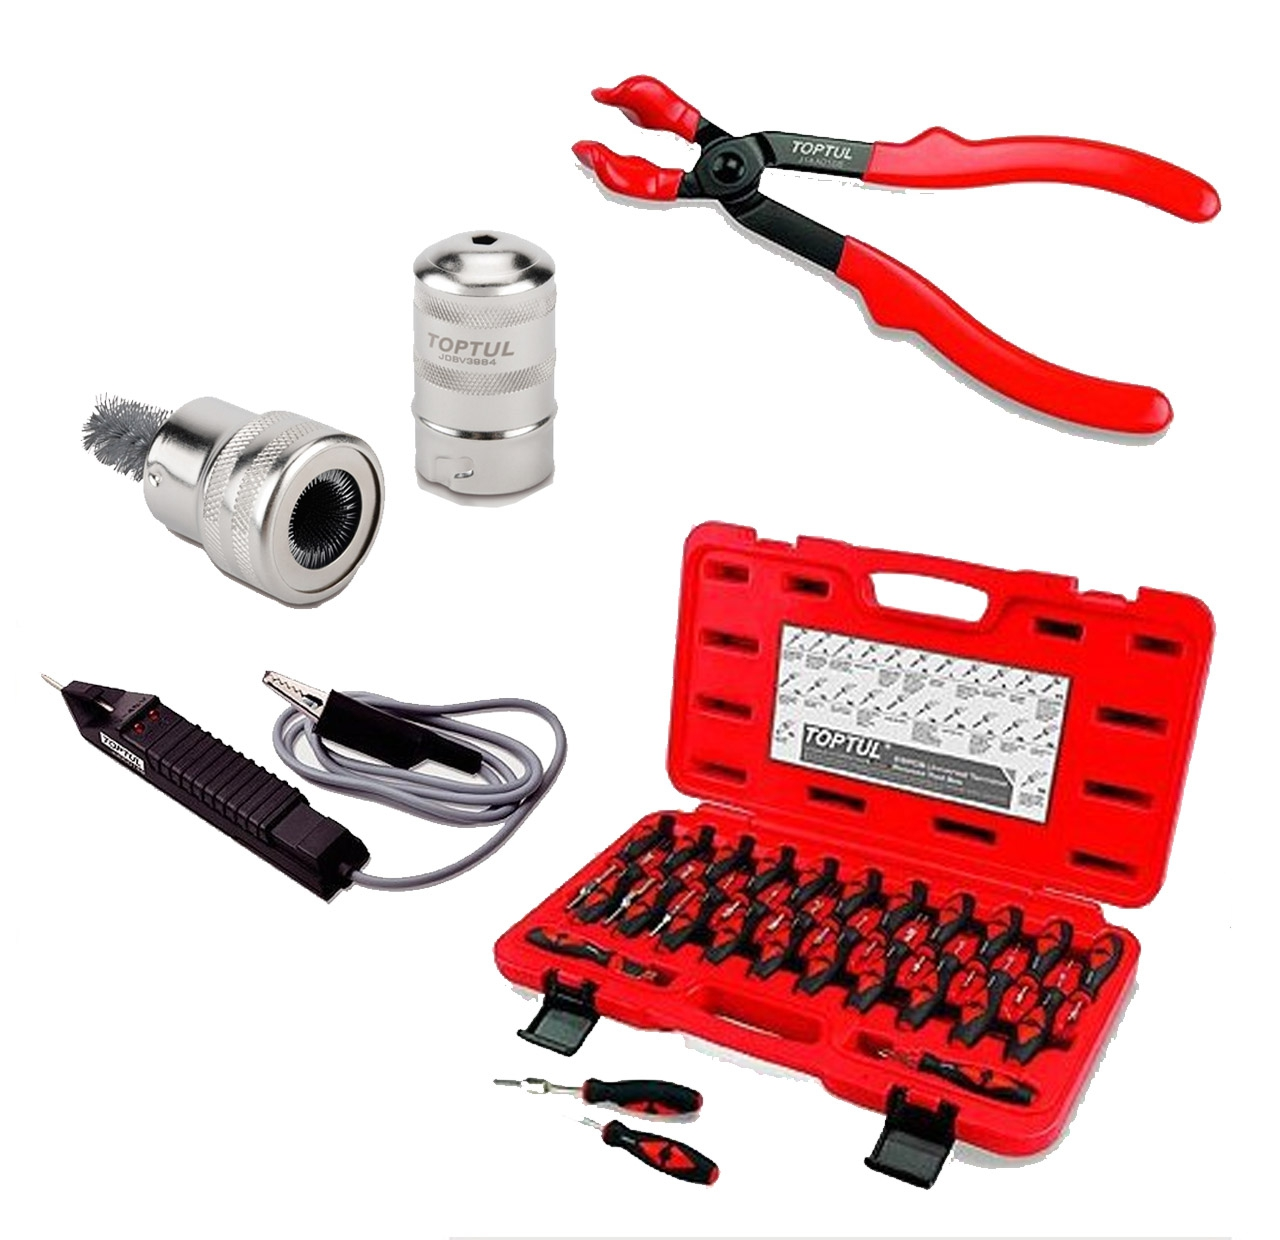 Online Automotive Electrical Tools And Accessories Wiring Supplies